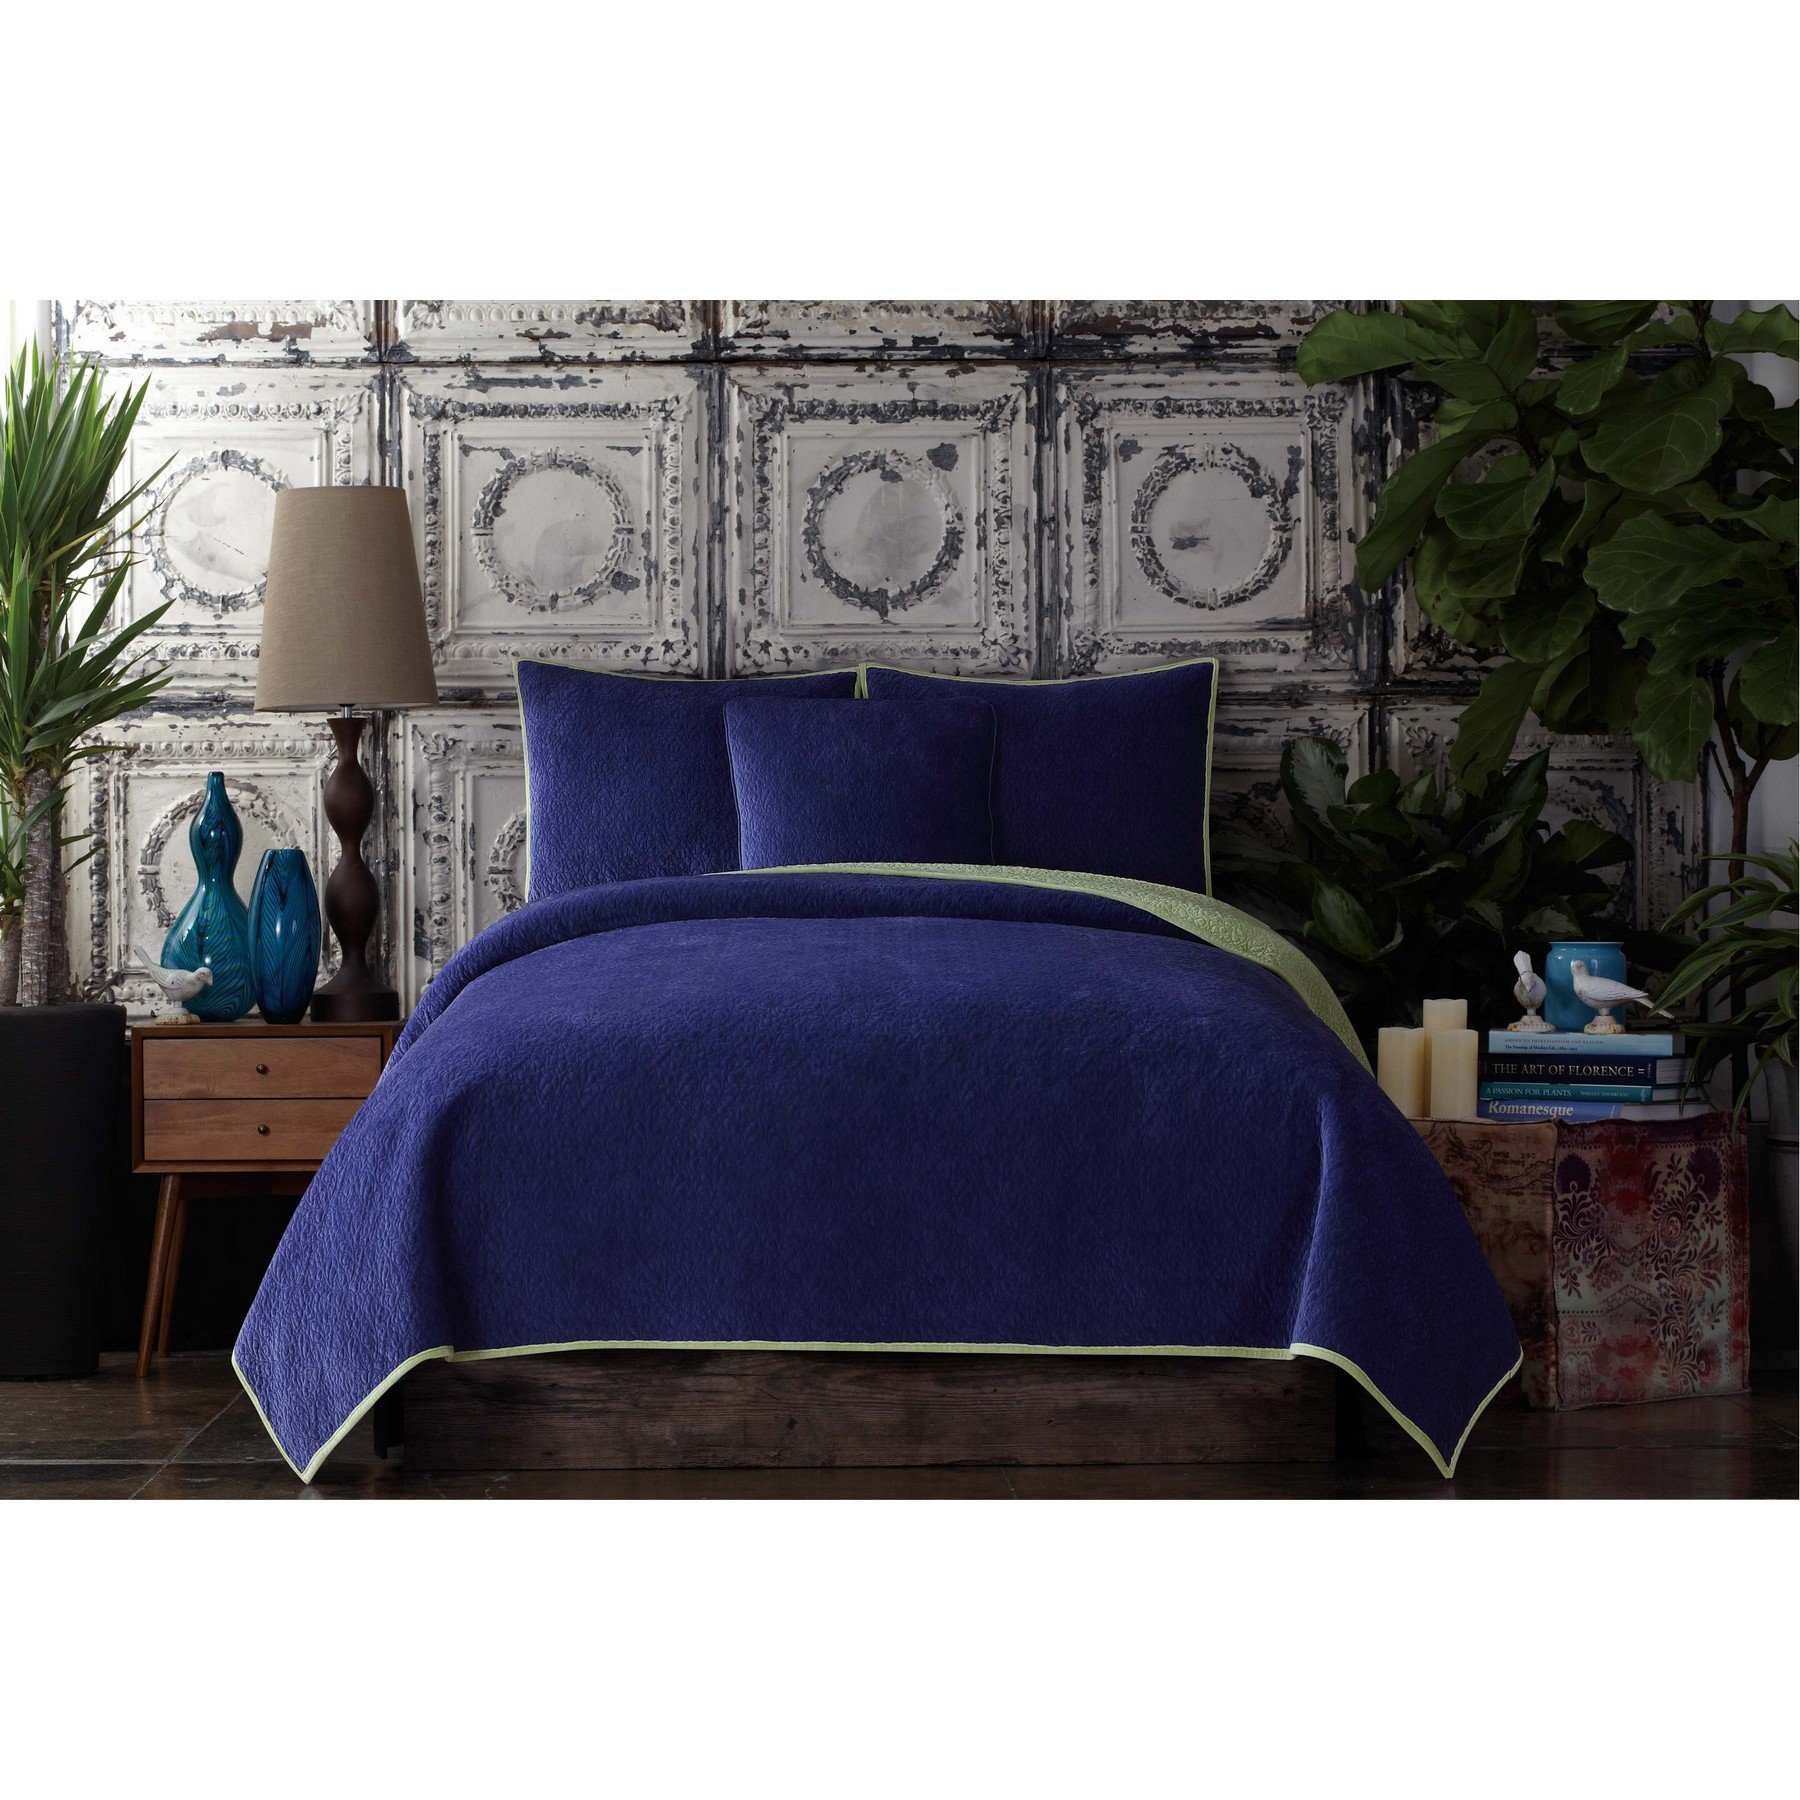 Poetic Wanderlust by Tracy Porter BQ2091PHKC-4400 Solid Reversible Velvet Coverlet, King, Deep Blue and Sea Mist Green by Poetic Wanderlust By Tracy Porter